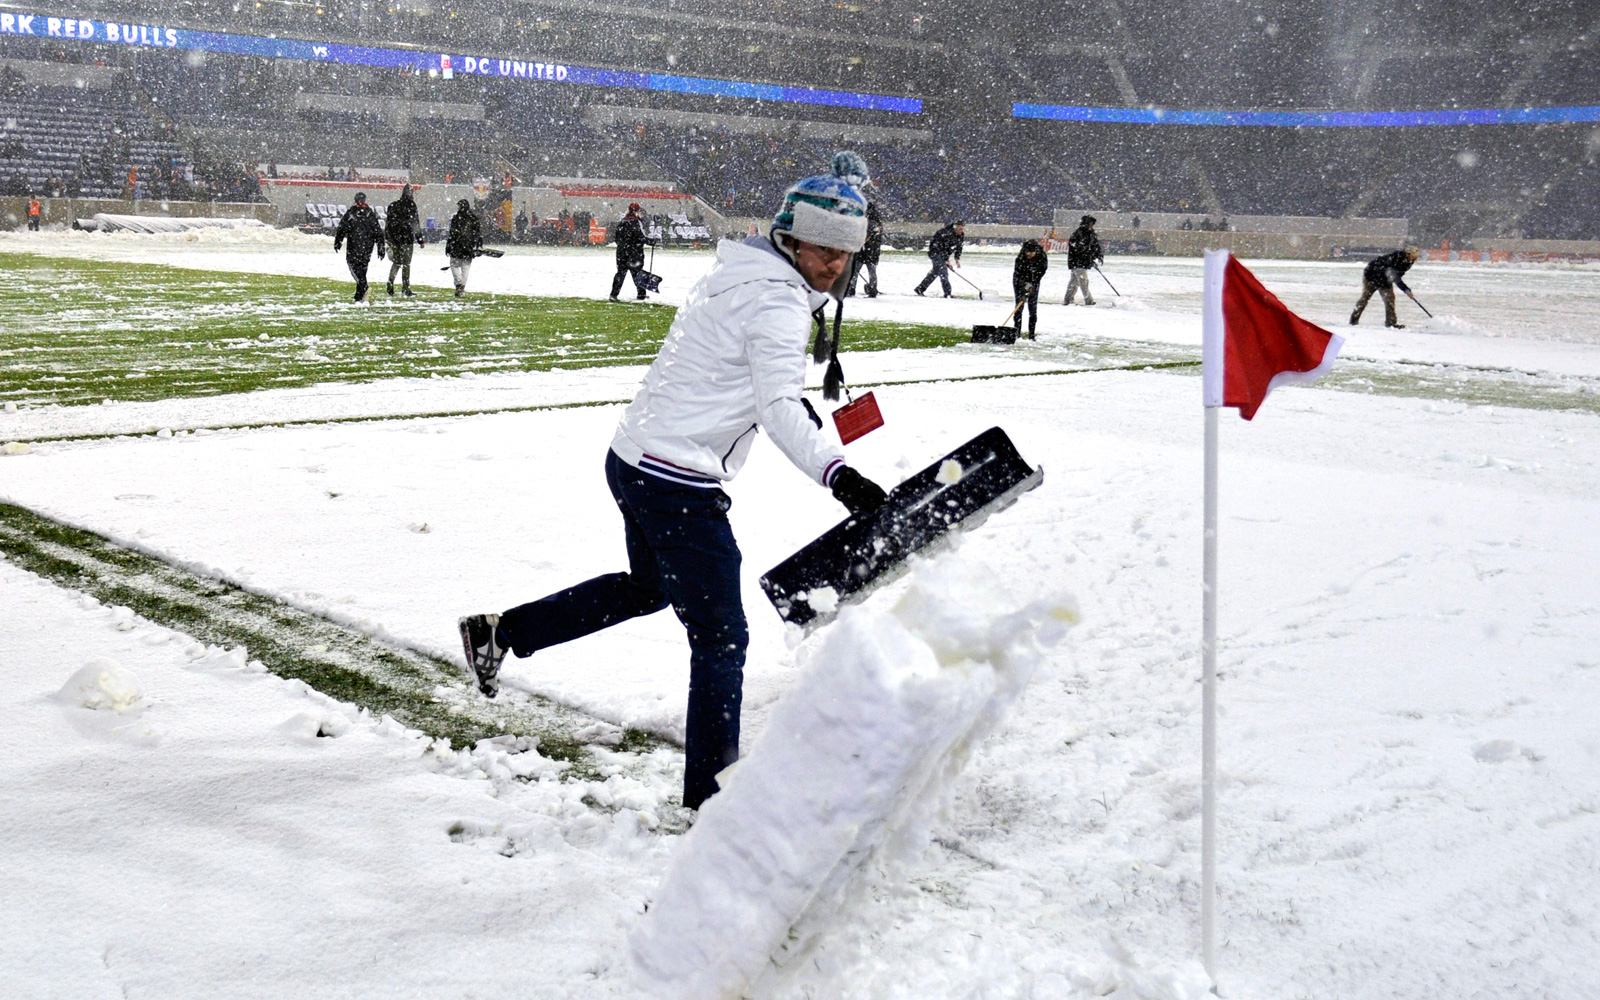 Groundsmen attempt to clear the Red Bull Arena field, but they couldn't do enough to keep the 2012 Eastern Conference semifinal clash between D.C. United and the New York Red Bulls from being postponed.